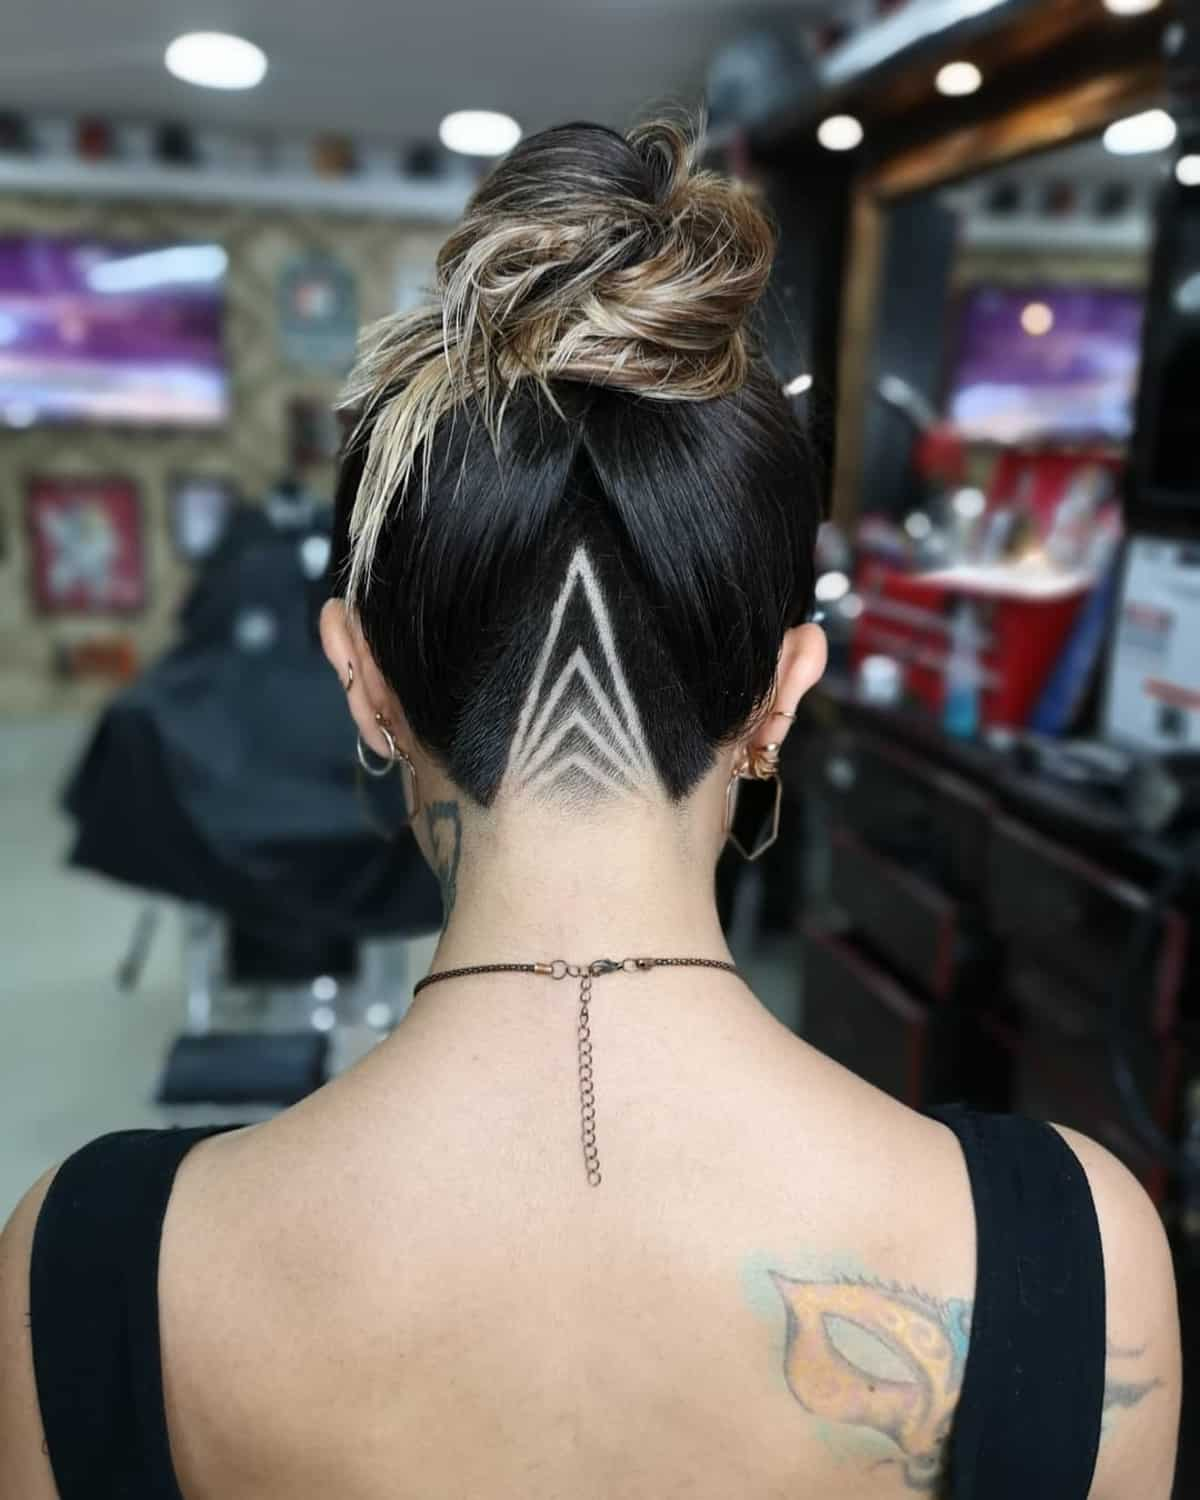 Curly undercuts have been the coolest hairstyles that men with curly,. The 22 Coolest Women S Undercut Hairstyles To Try In 2021